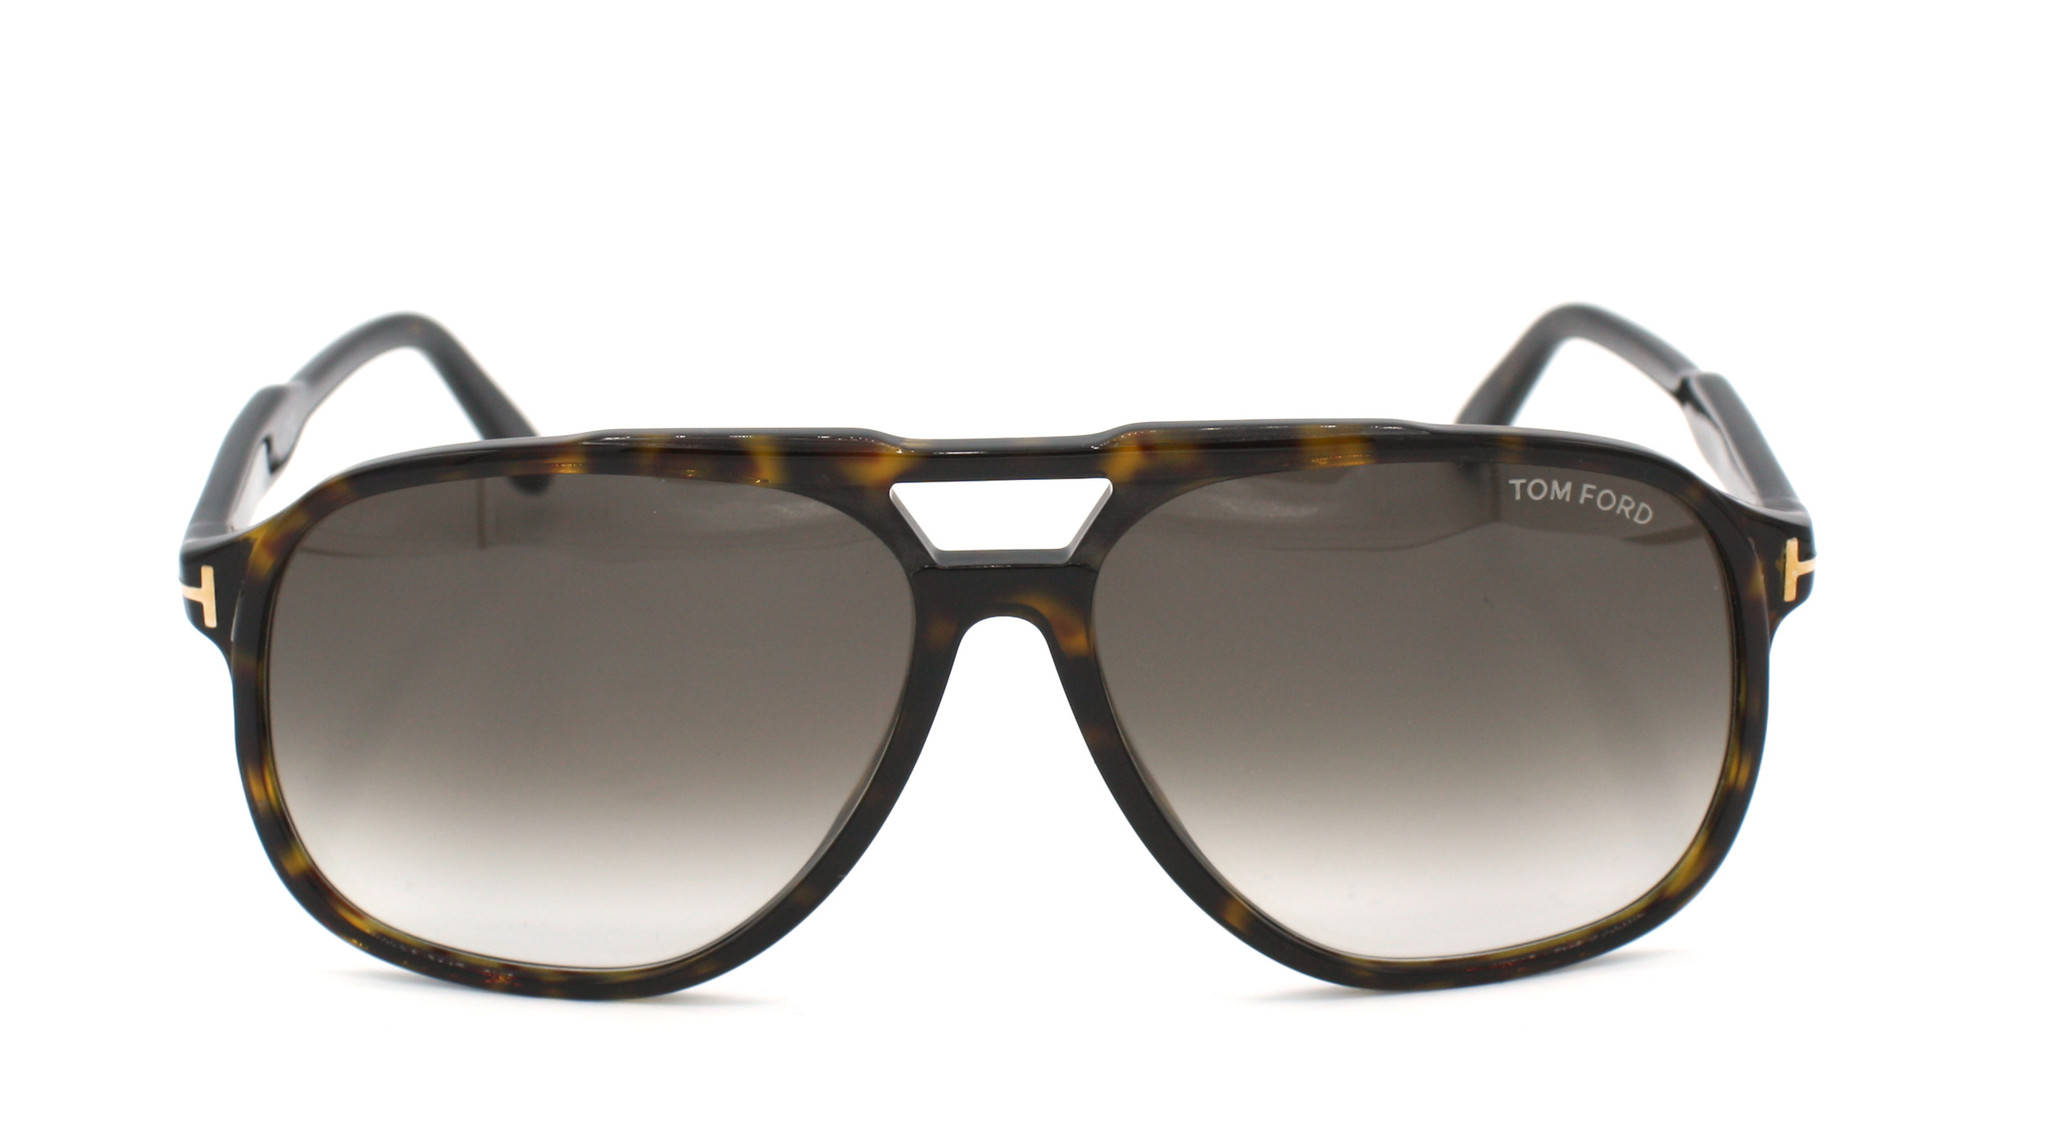 Tom Ford - Raoul TF753 - 52K-1